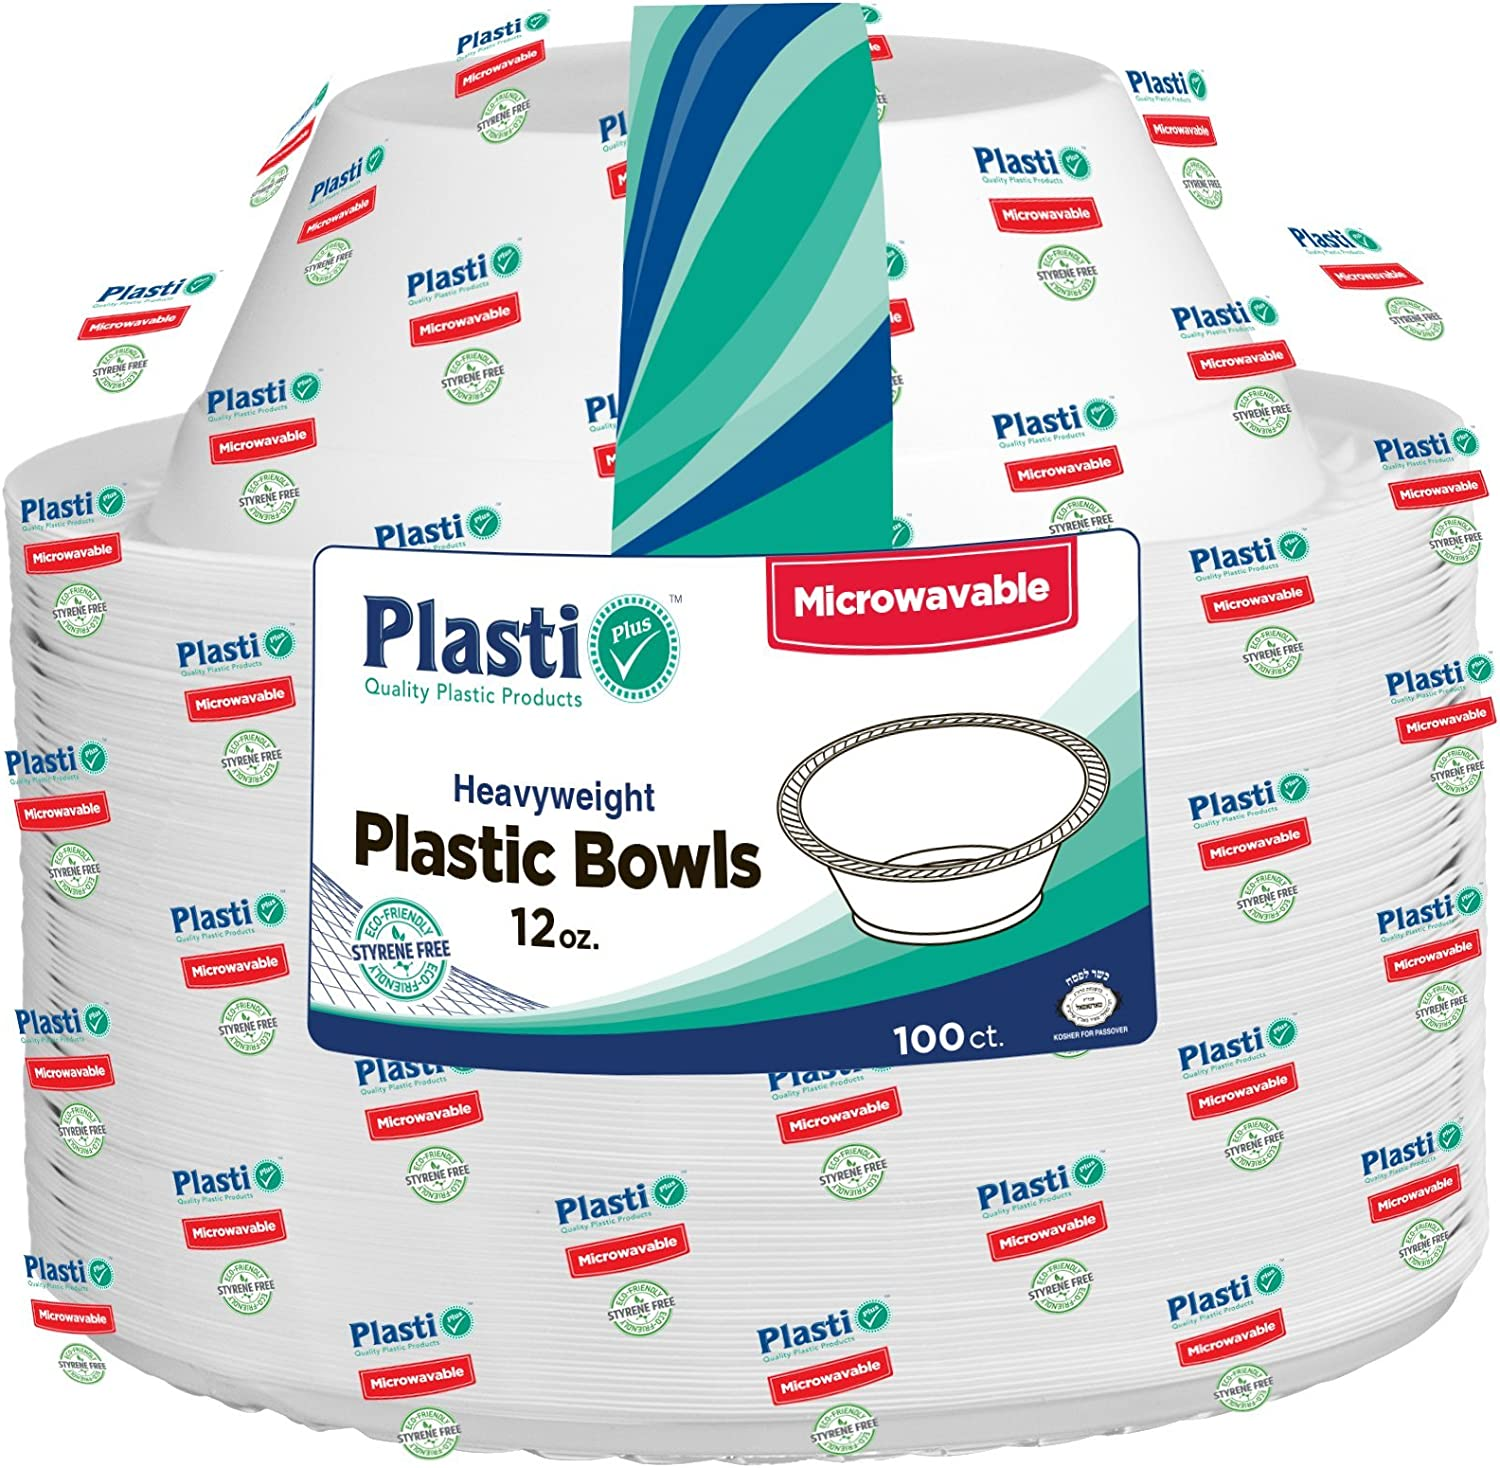 [100 Count] Plasti Plus Disposable Plastic White 12 oz Heavy Weight Soup Bowls, Great For Weddings, Home, Office, School, Party, Picnics, Take-out, Fast Food, Outdoor, Events, Or Every Day Use,